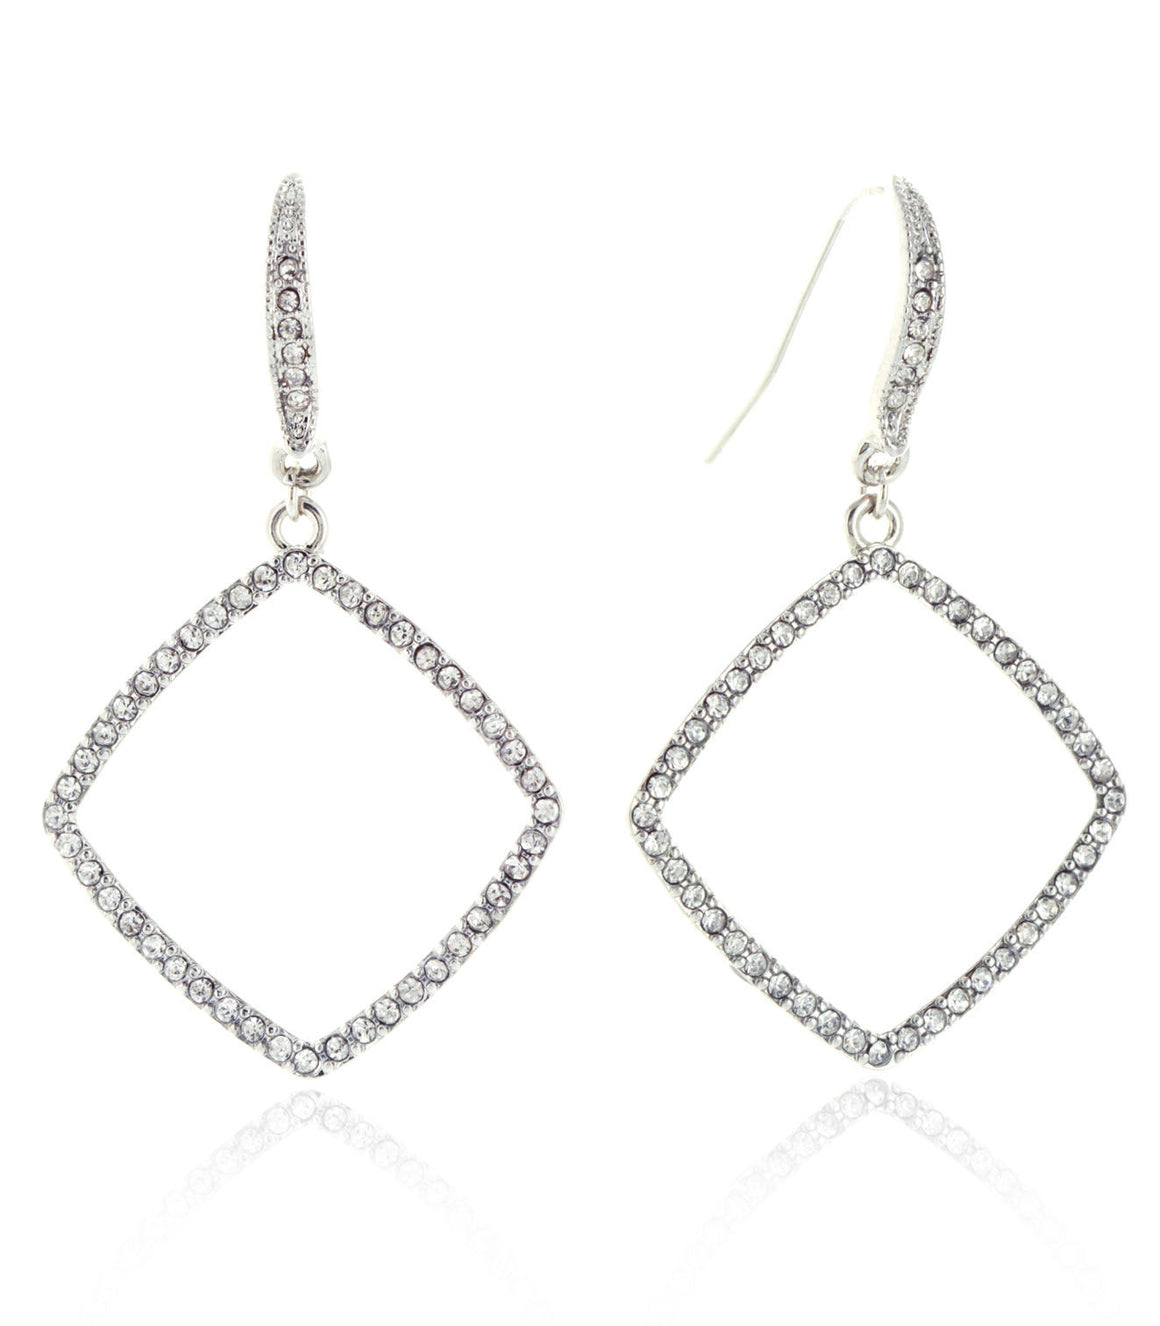 Open cut rhinestne pave square fish hook earrings.